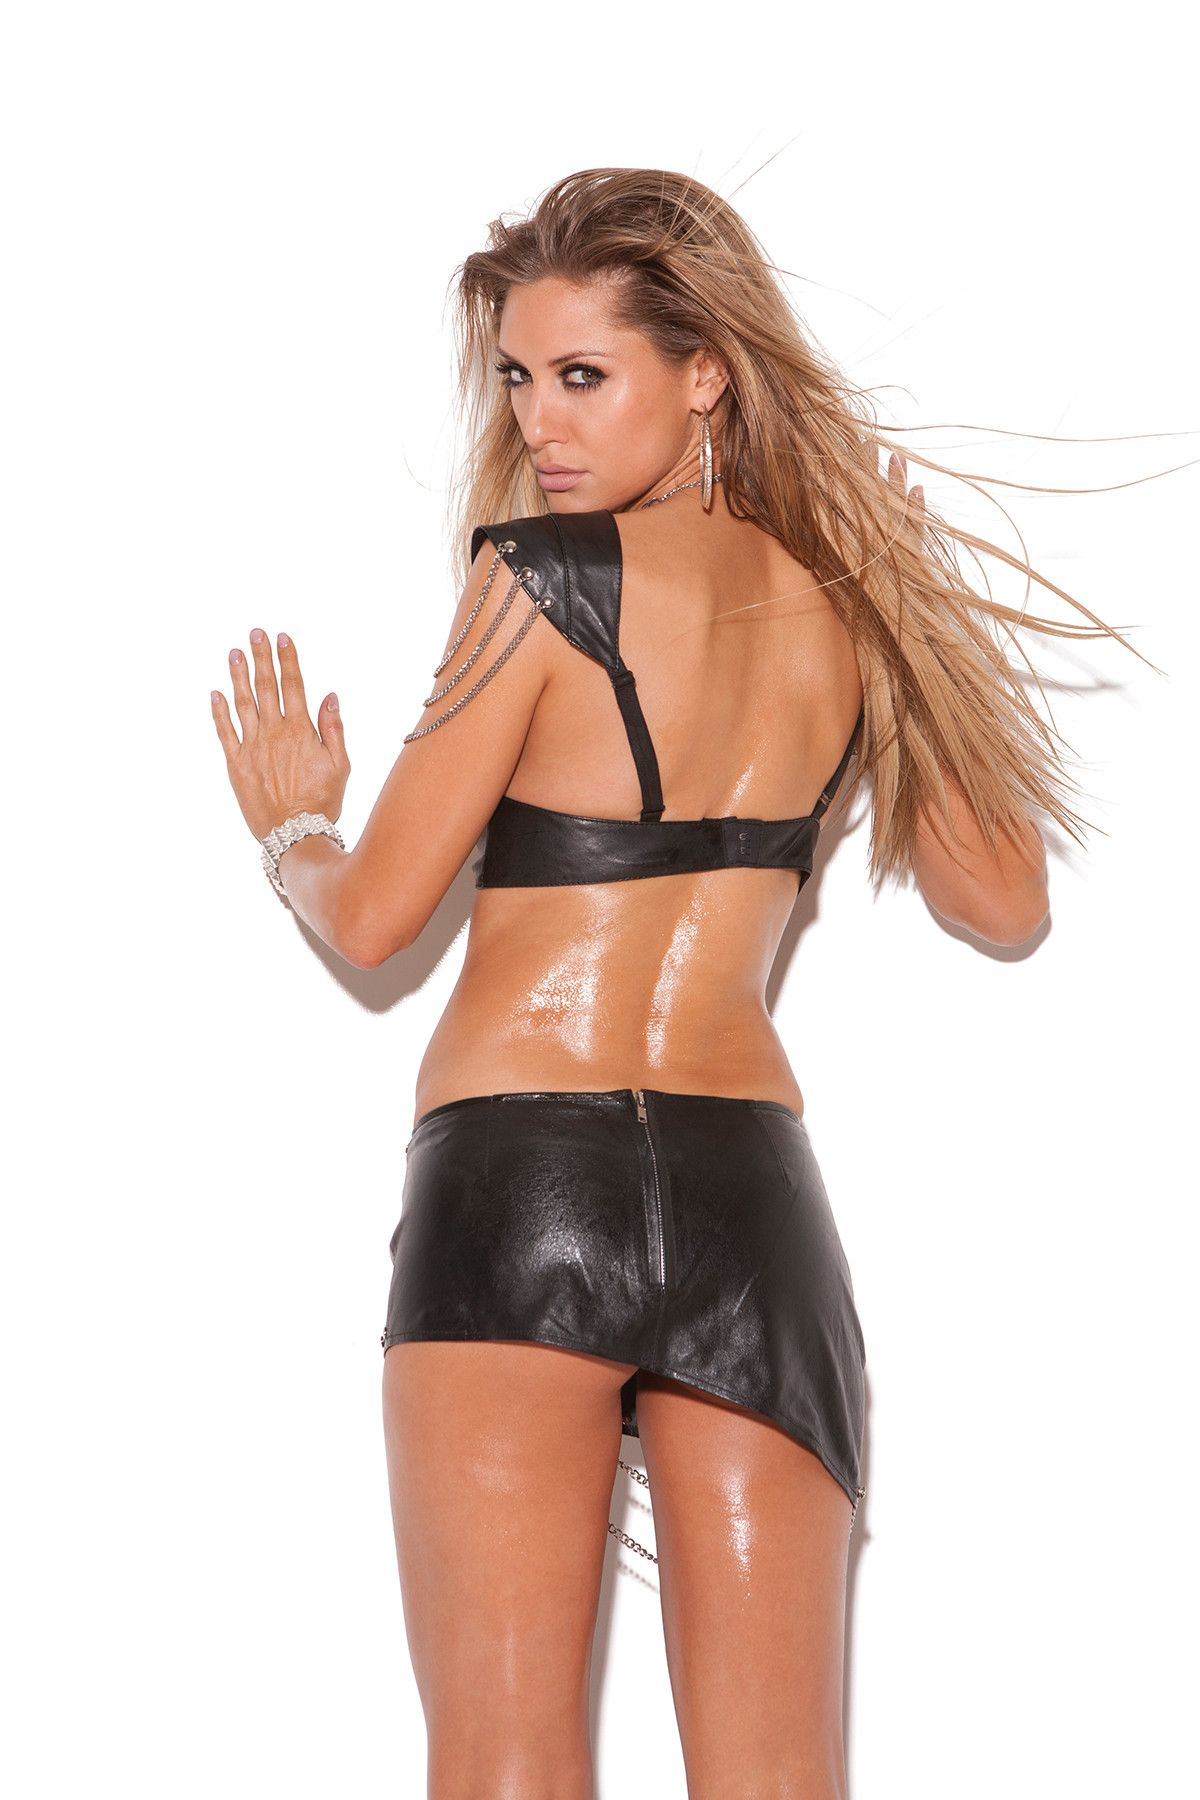 259286ce7 Leather bra top with underwire cups